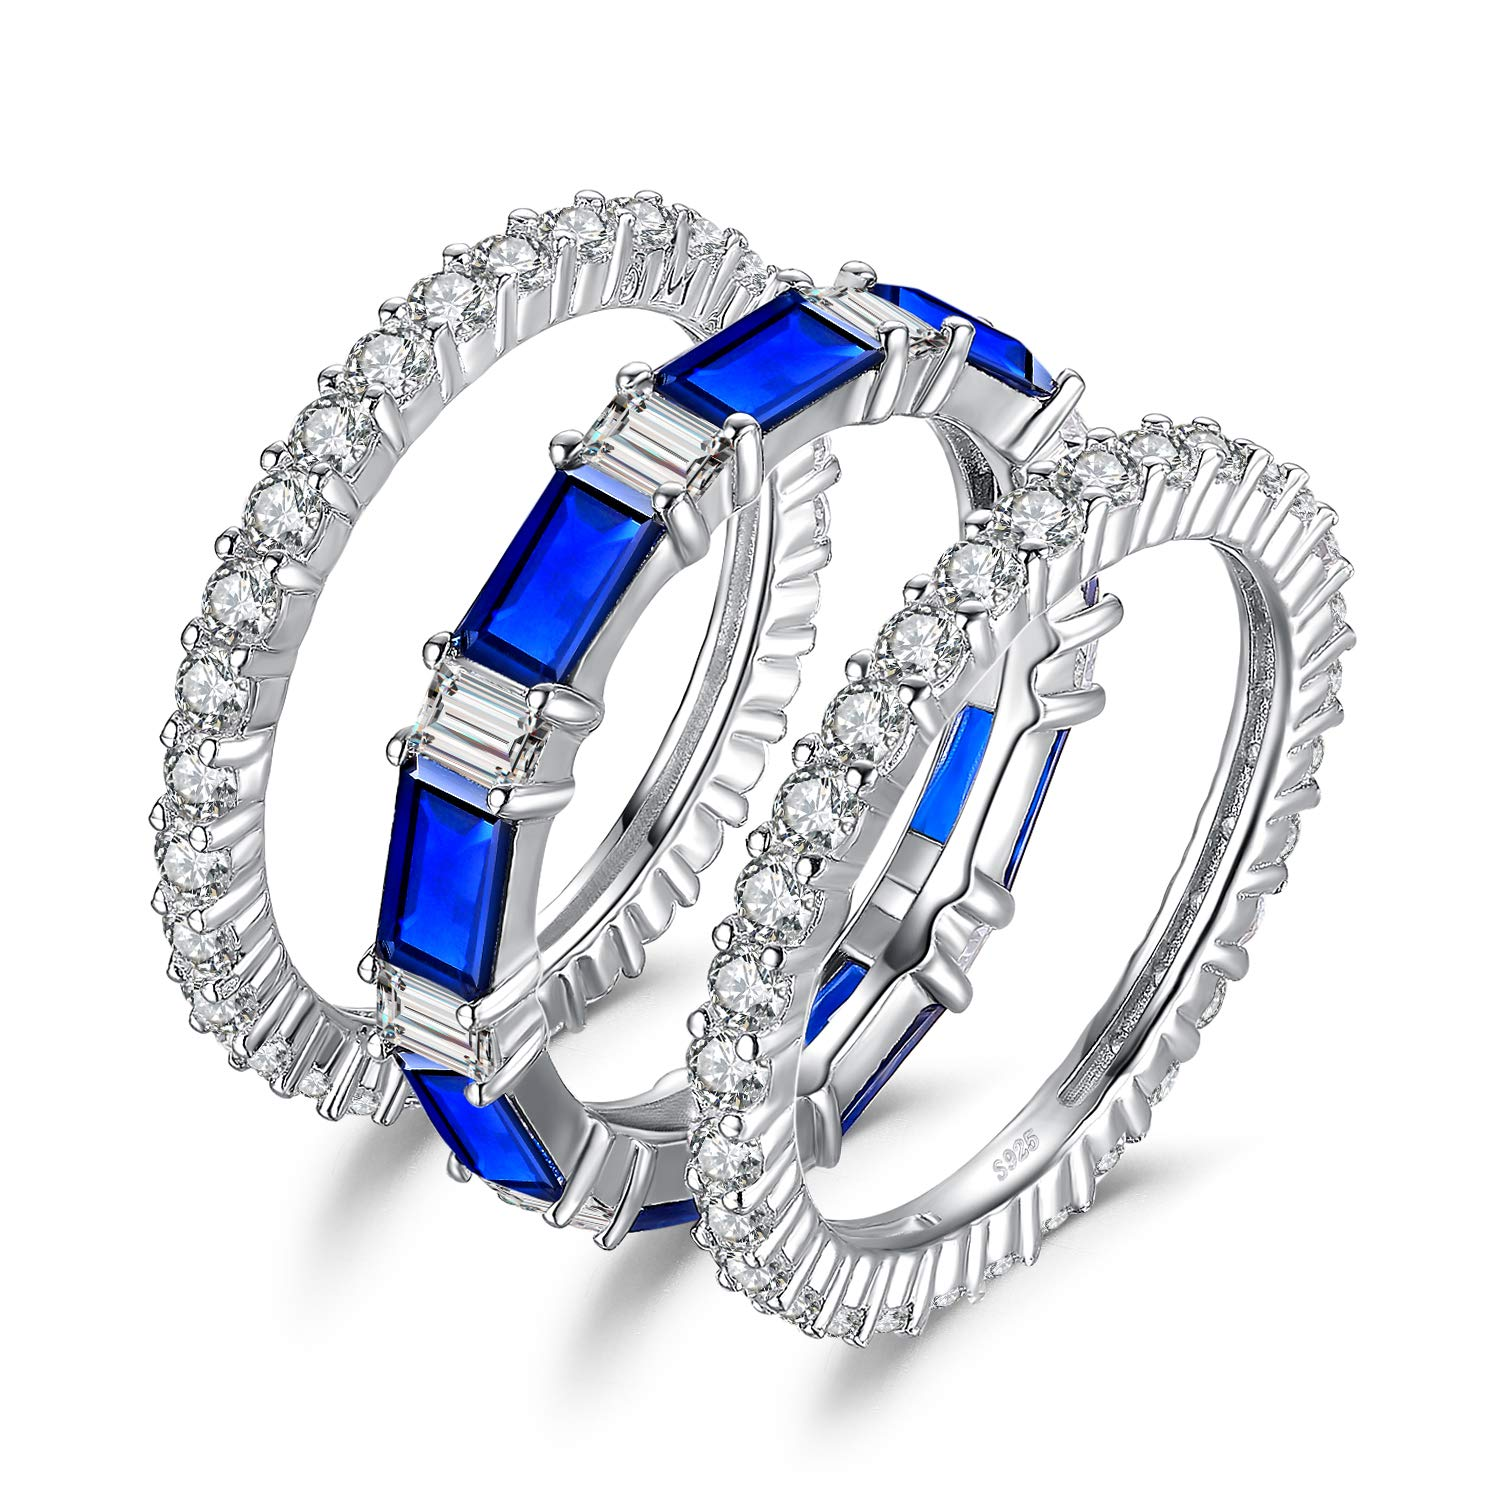 JewelryPalace 3PC 7ct Stackable Eternity Rings Wedding Rings Wedding Bands For Women Anniversary Ring Channel Bridal Sets 925 Sterling Silver Created Blue Spinel Cubic Zirconia Rings Size 8